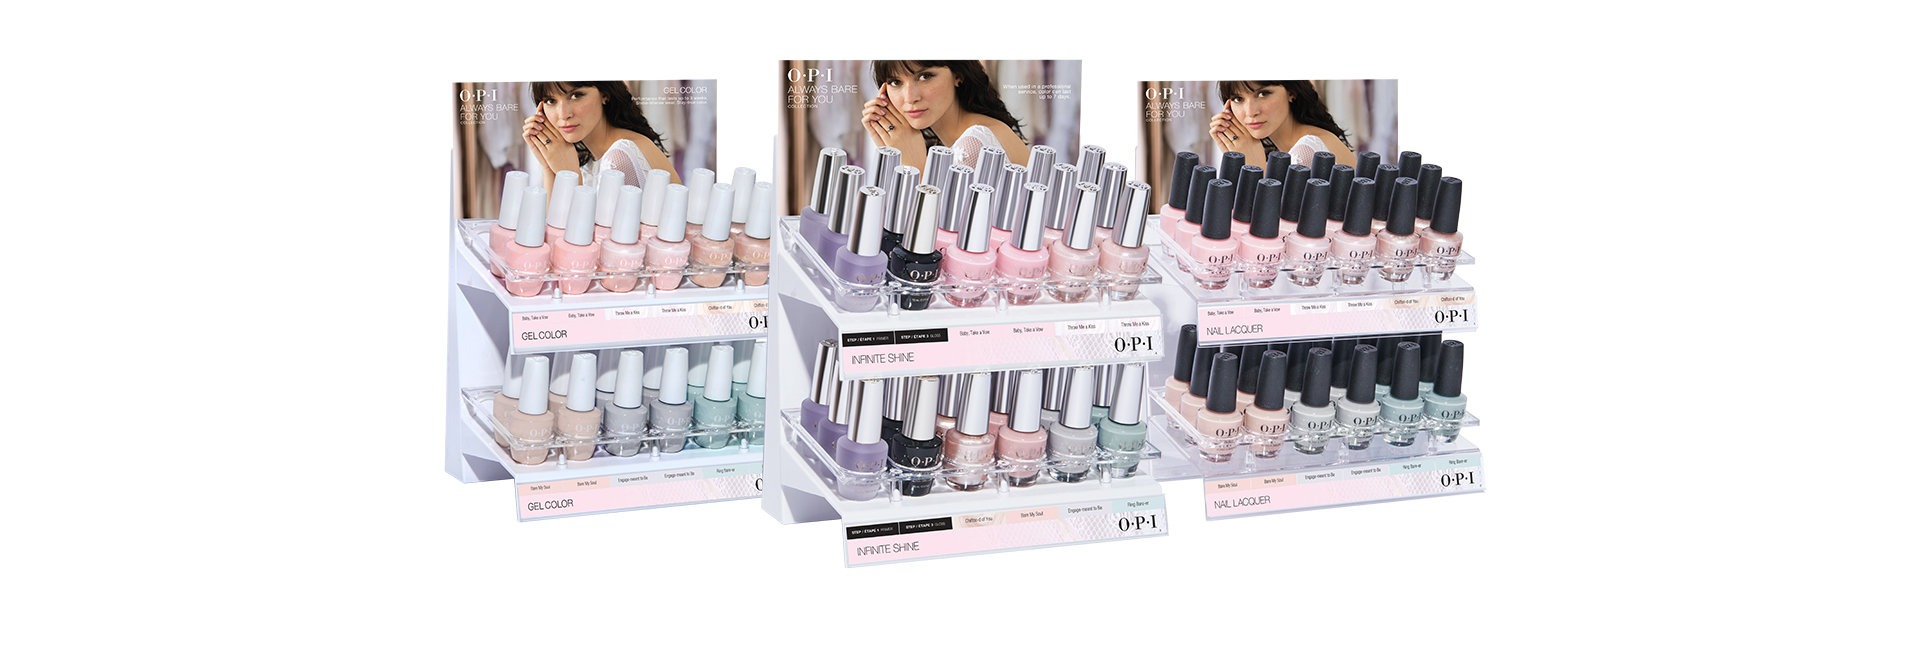 OPI Always Bare for You Collection Displays